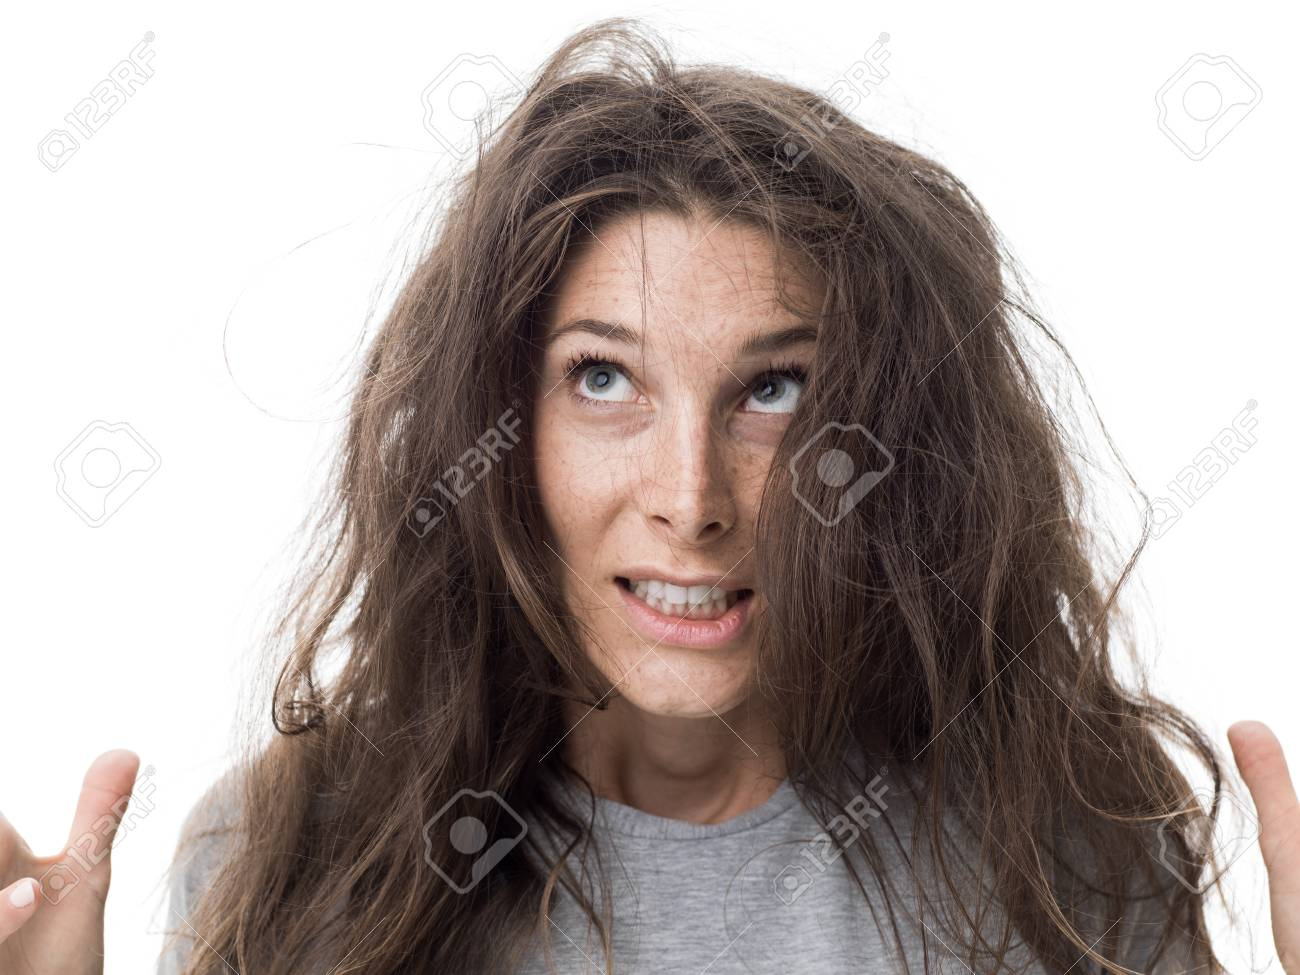 Angry Young Woman Having A Bad Hair Day Her Long Hair Is Messy